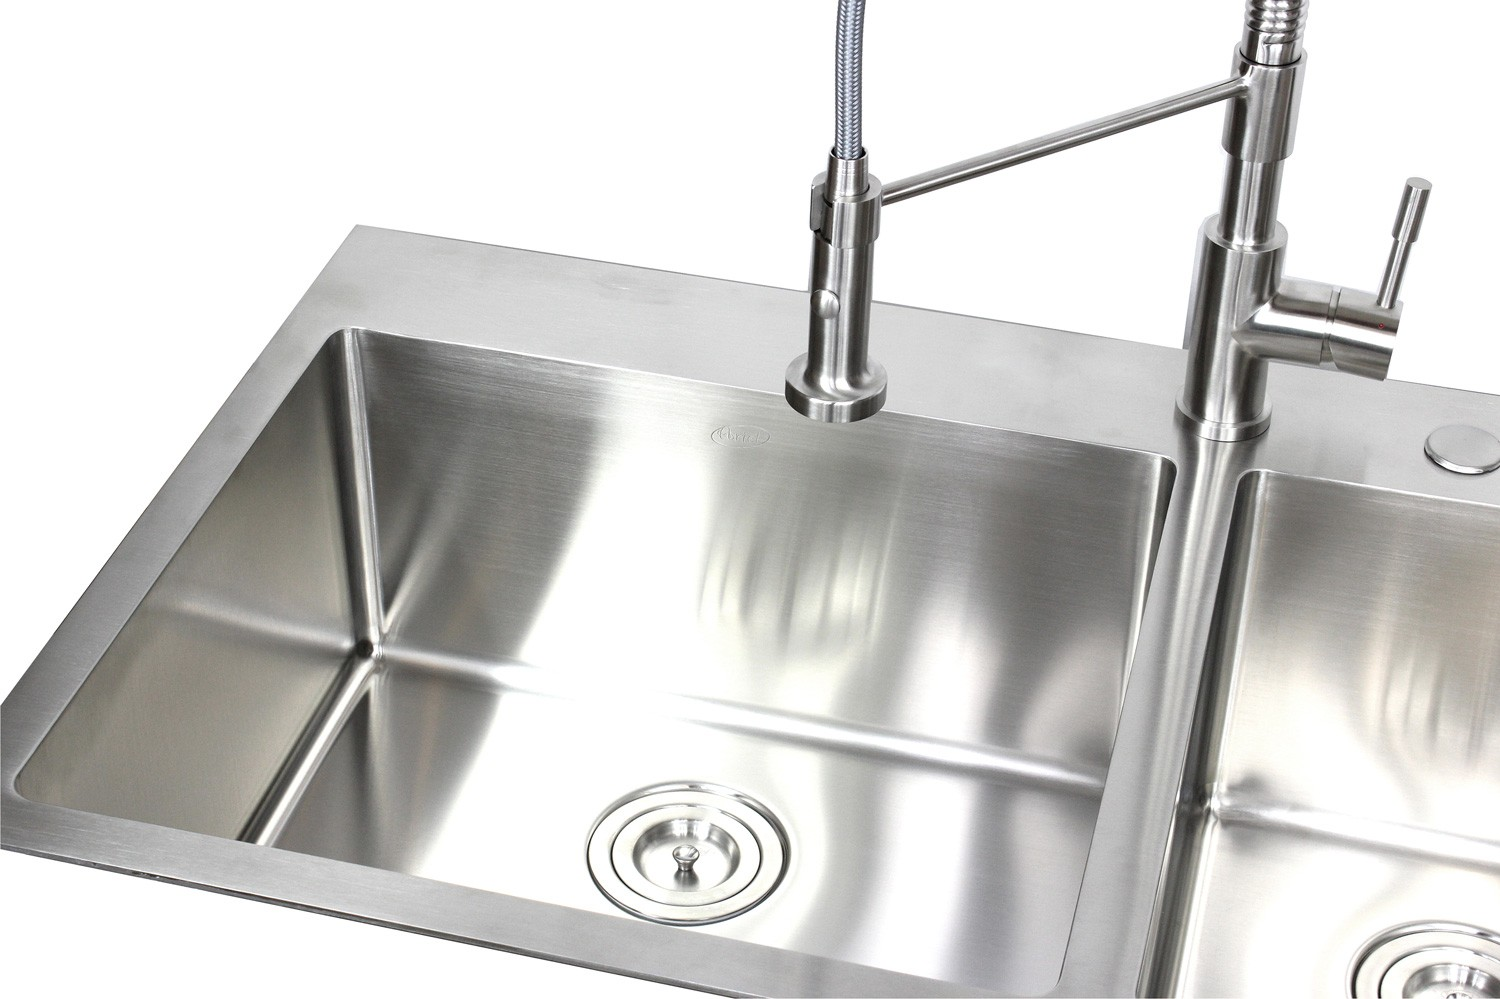 36 Inch Top-Mount / Drop-In Stainless Steel 60/40 Double Bowl ...